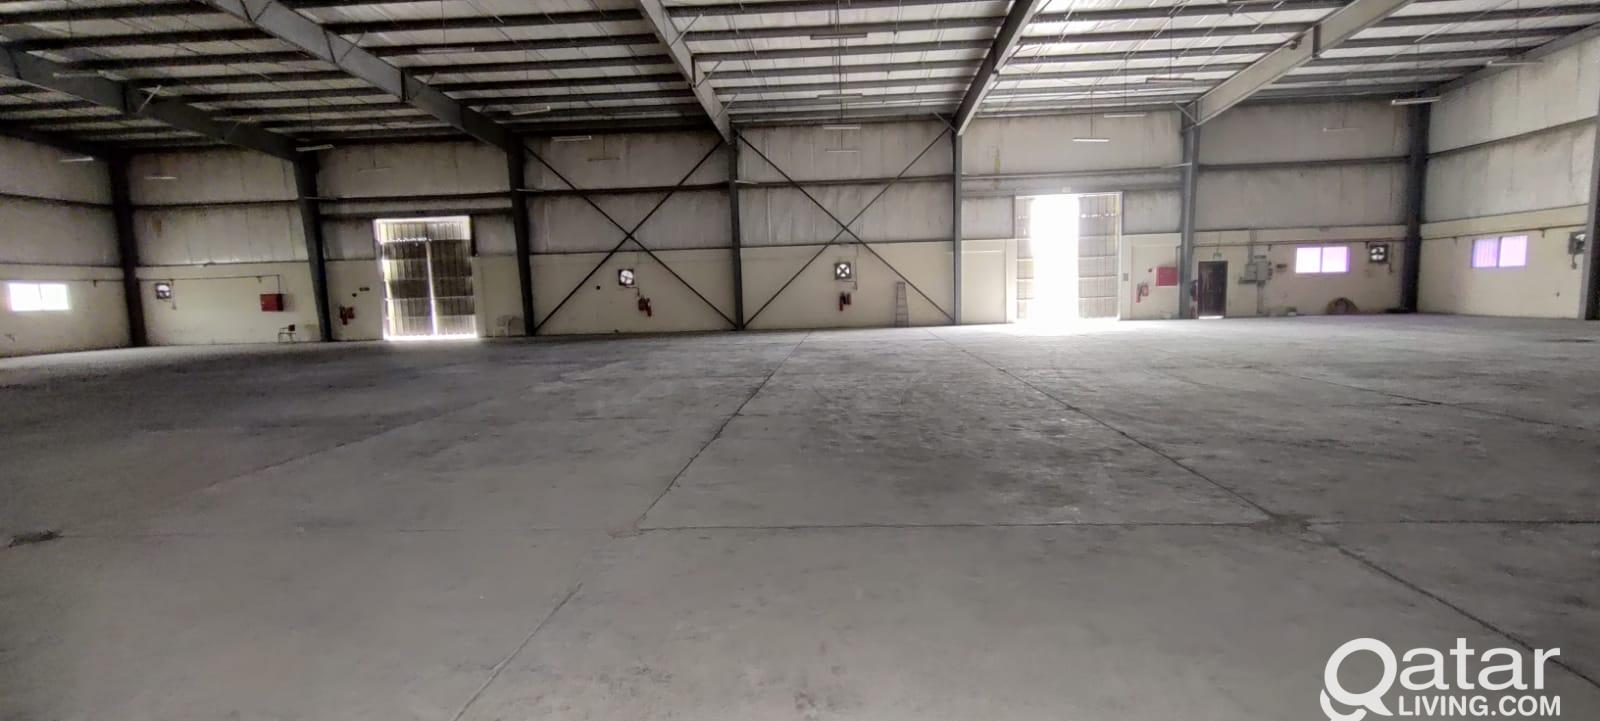 1500 Store For Rent